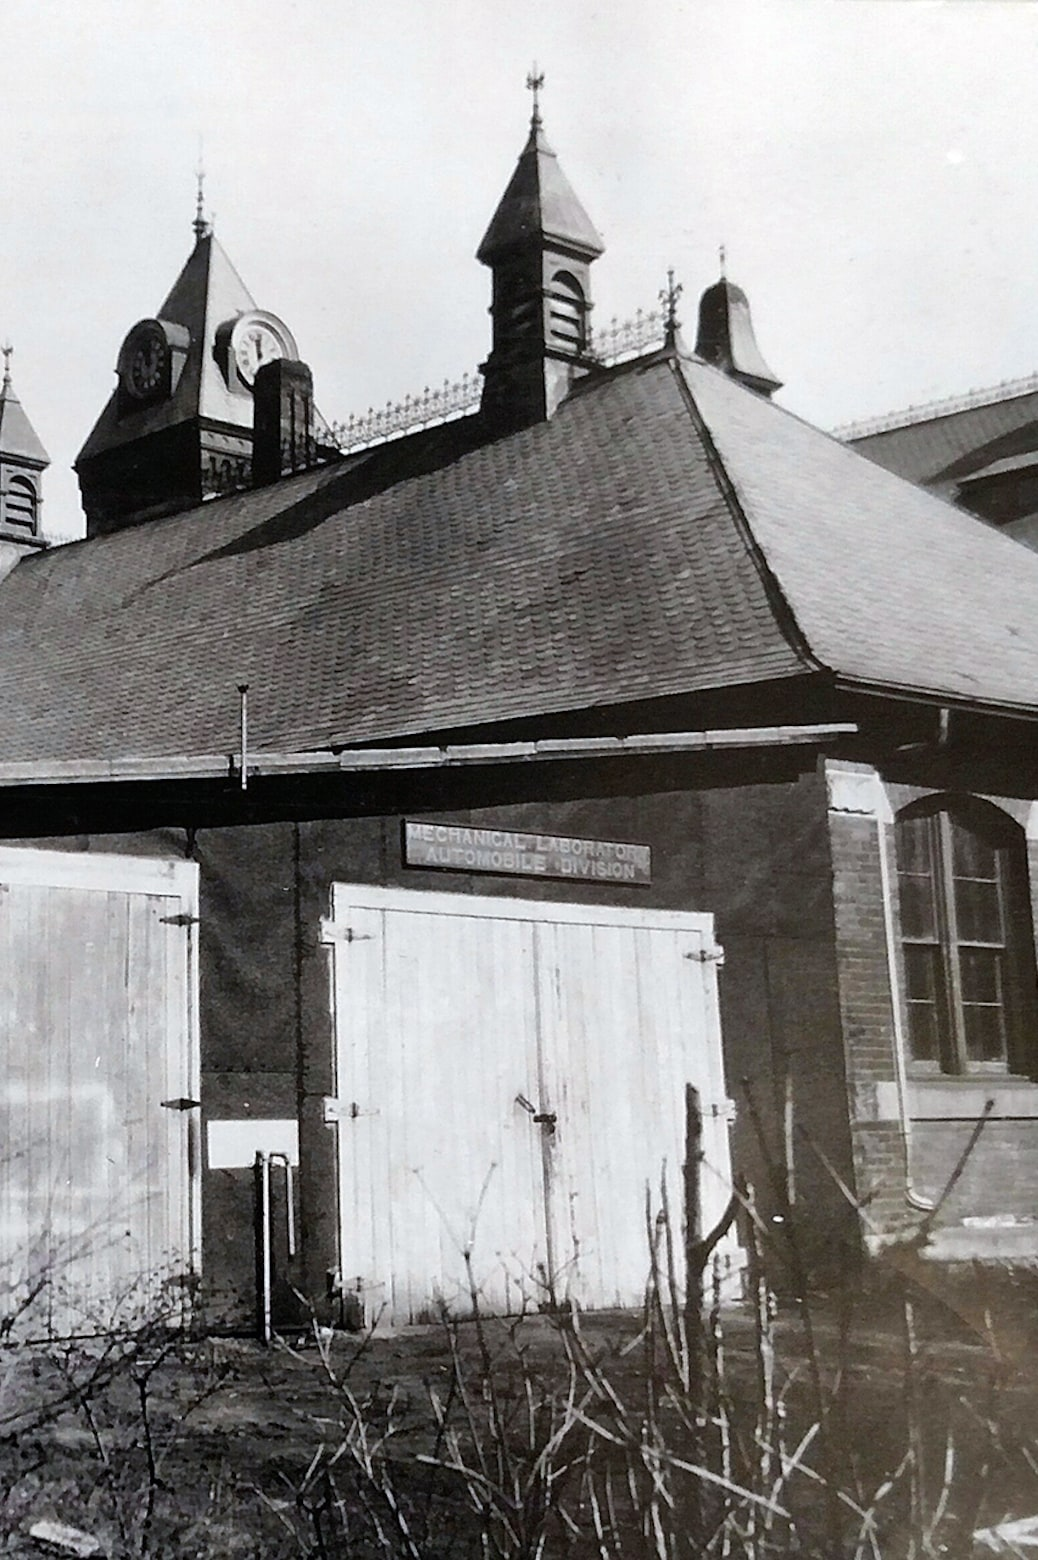 Black and white photo of the old Mechanical Laboratory Automobile Division building